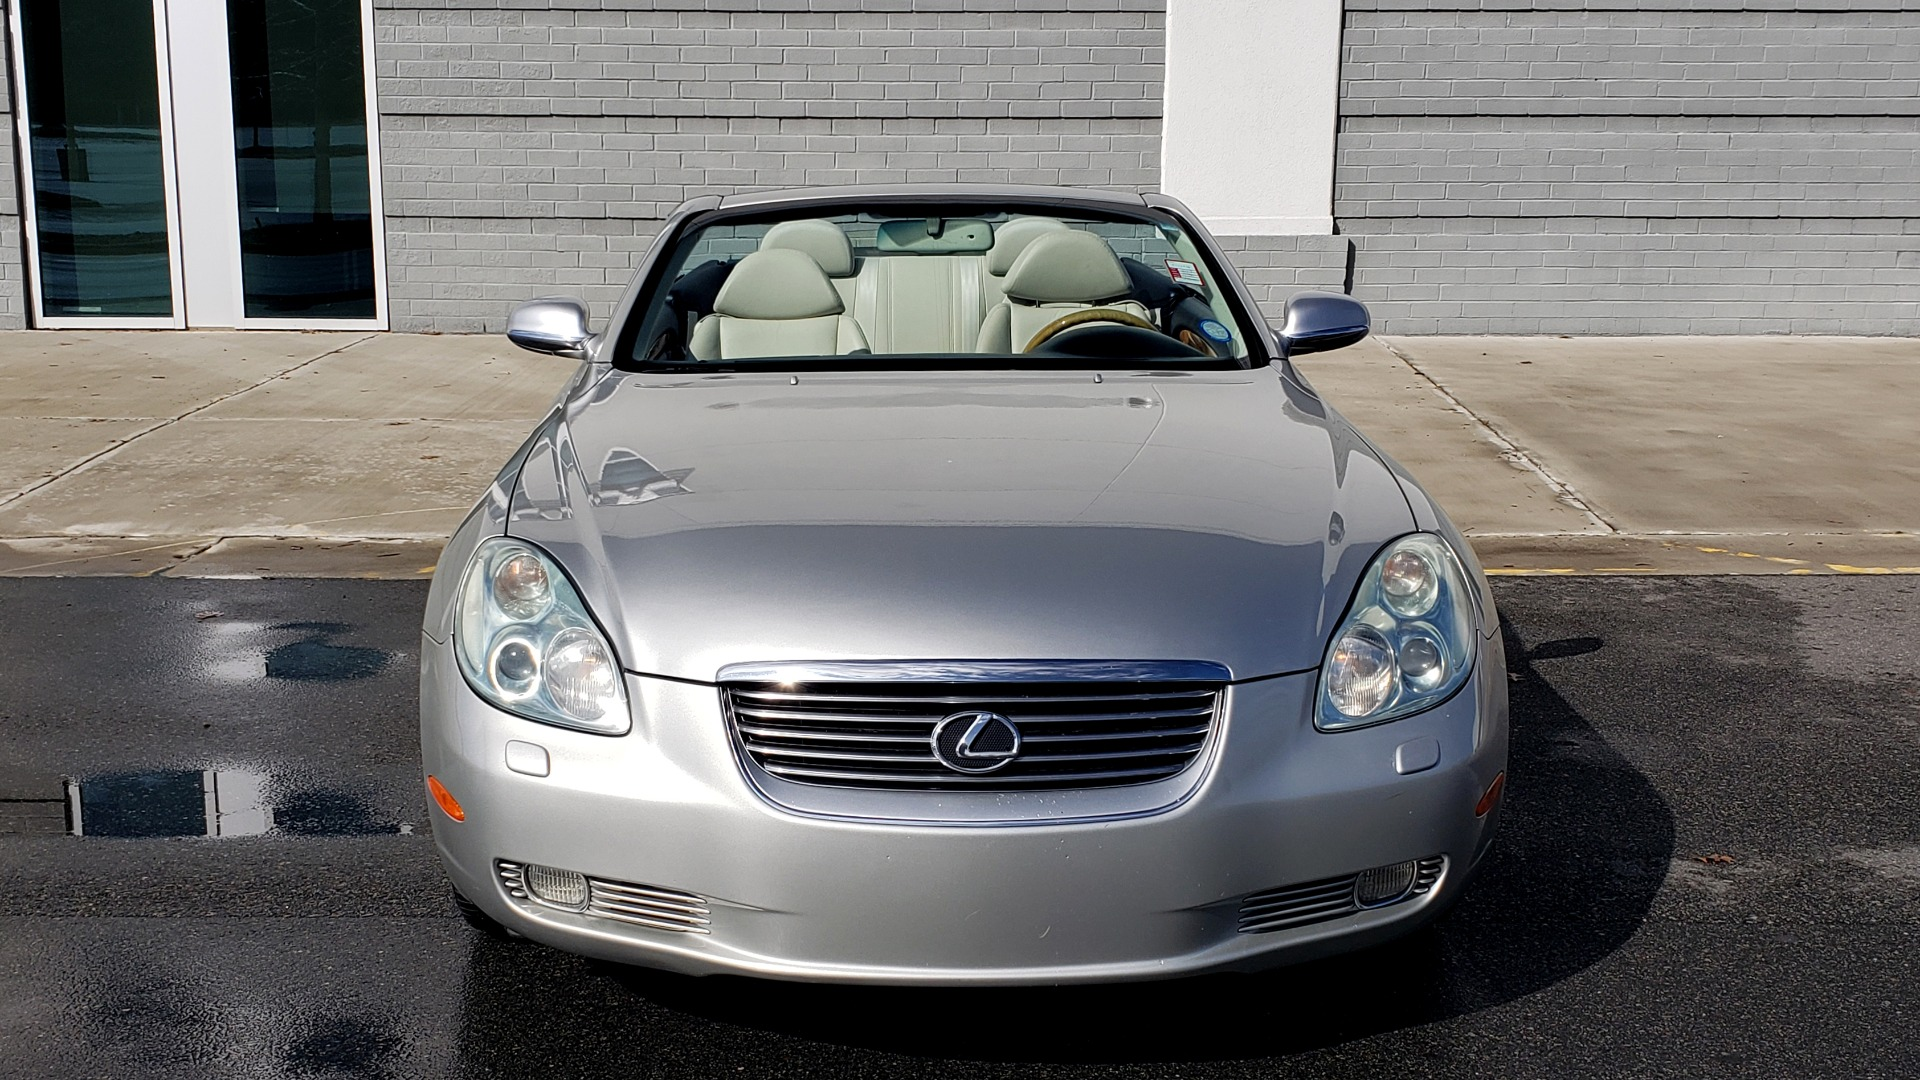 Used 2004 Lexus SC 430 CONVERTIBLE / 4.3L V8 / 5-SPD AUTO / MARK LEVINSON / 18IN WHEELS for sale $14,995 at Formula Imports in Charlotte NC 28227 27